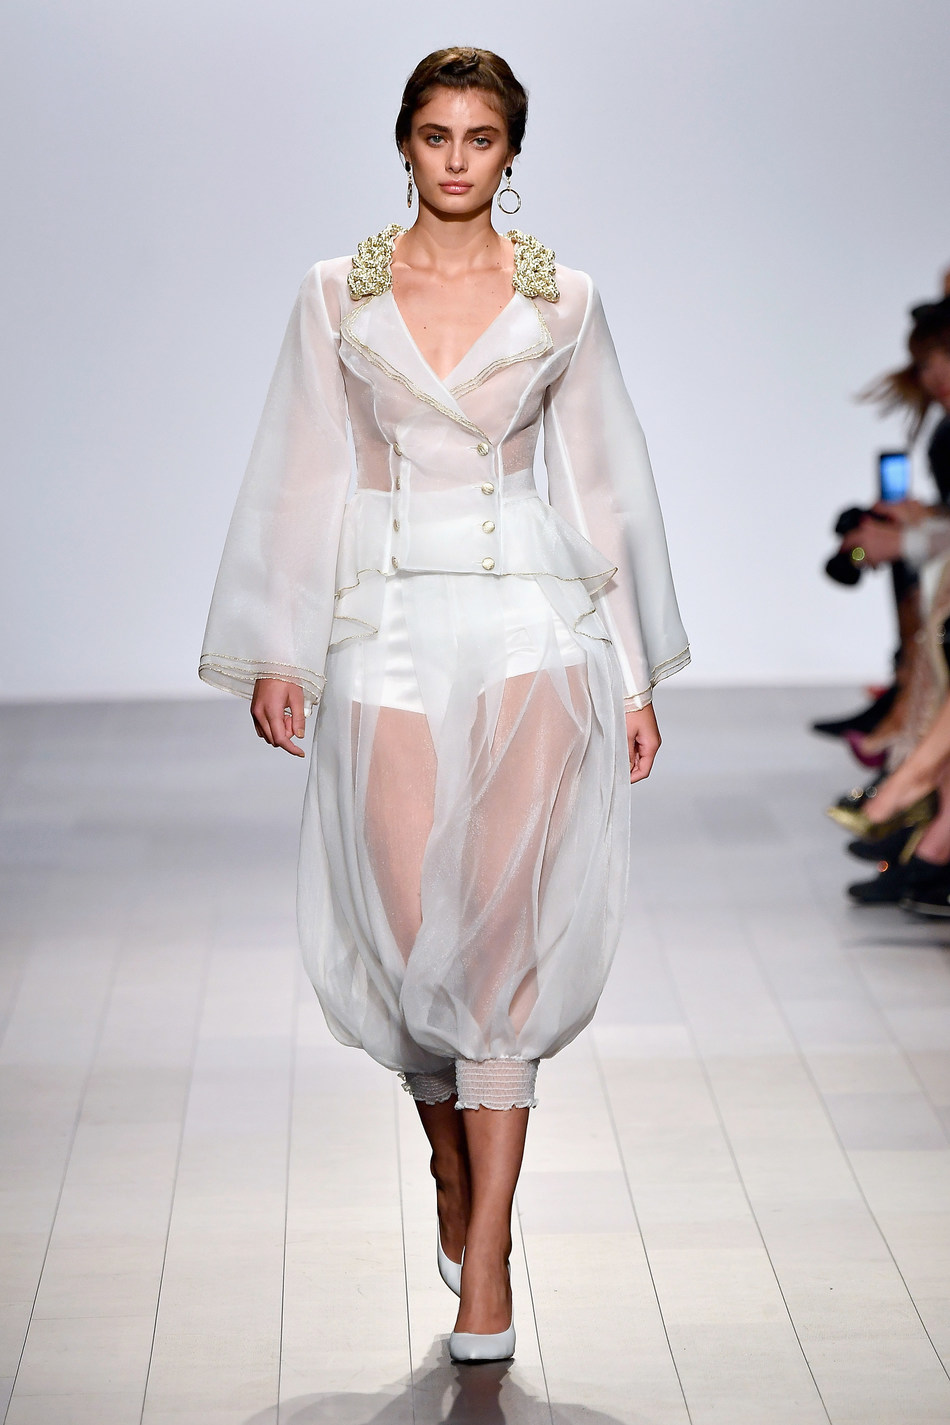 Taylor Hill walking for John Paul Ataker NYFW Runway Show